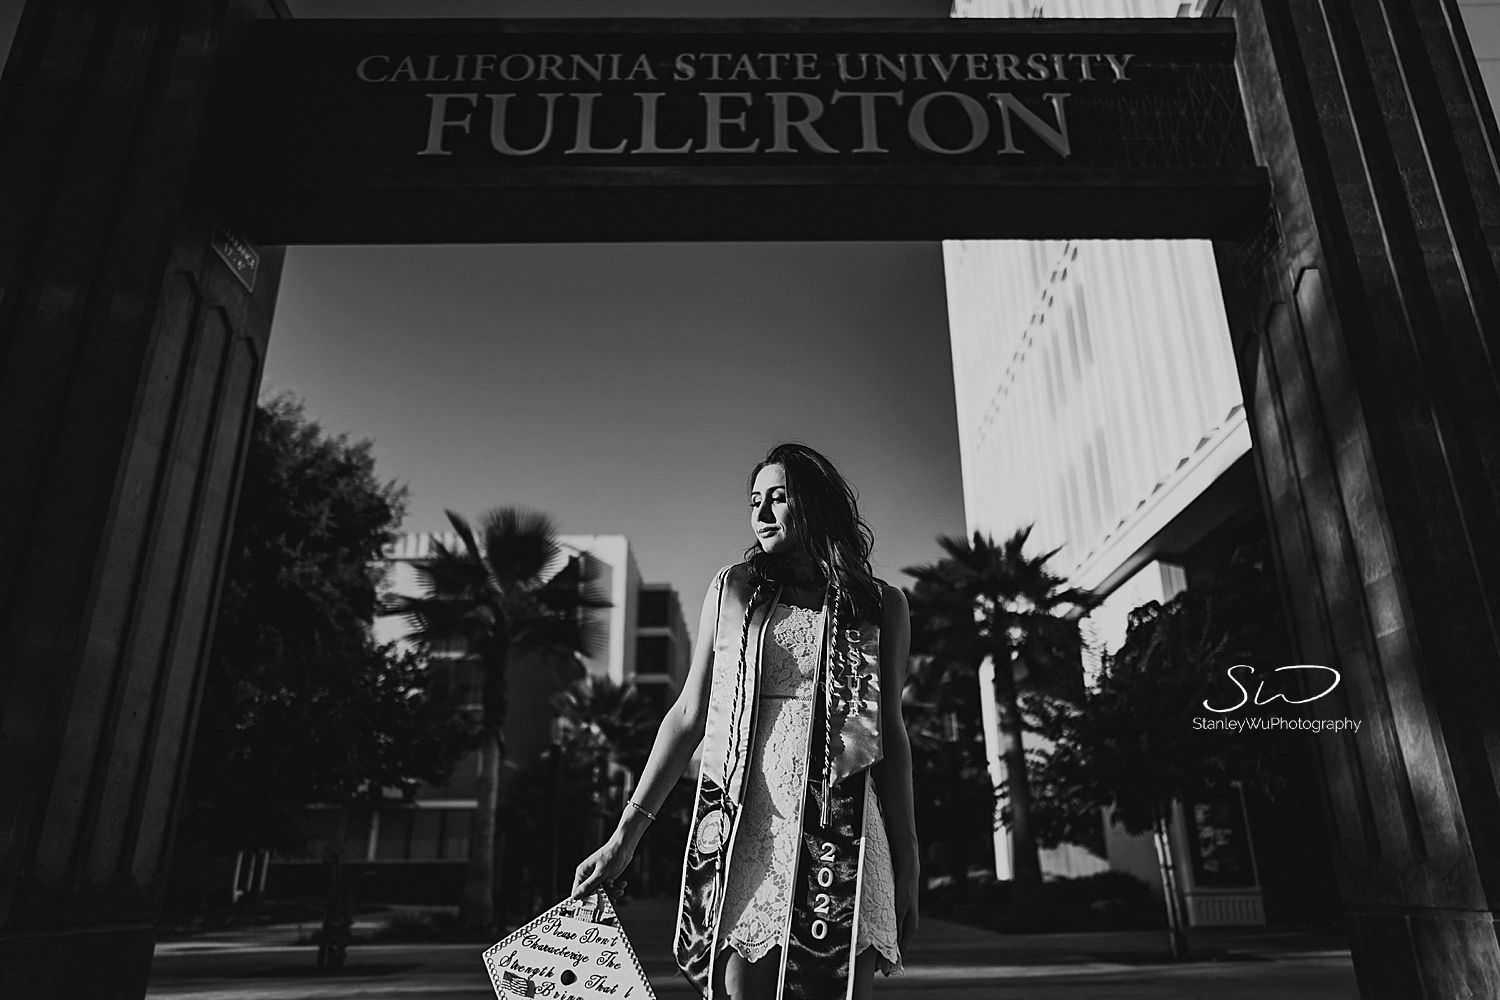 csu fullerton graduation photos dramatic epic shot in front of the sign